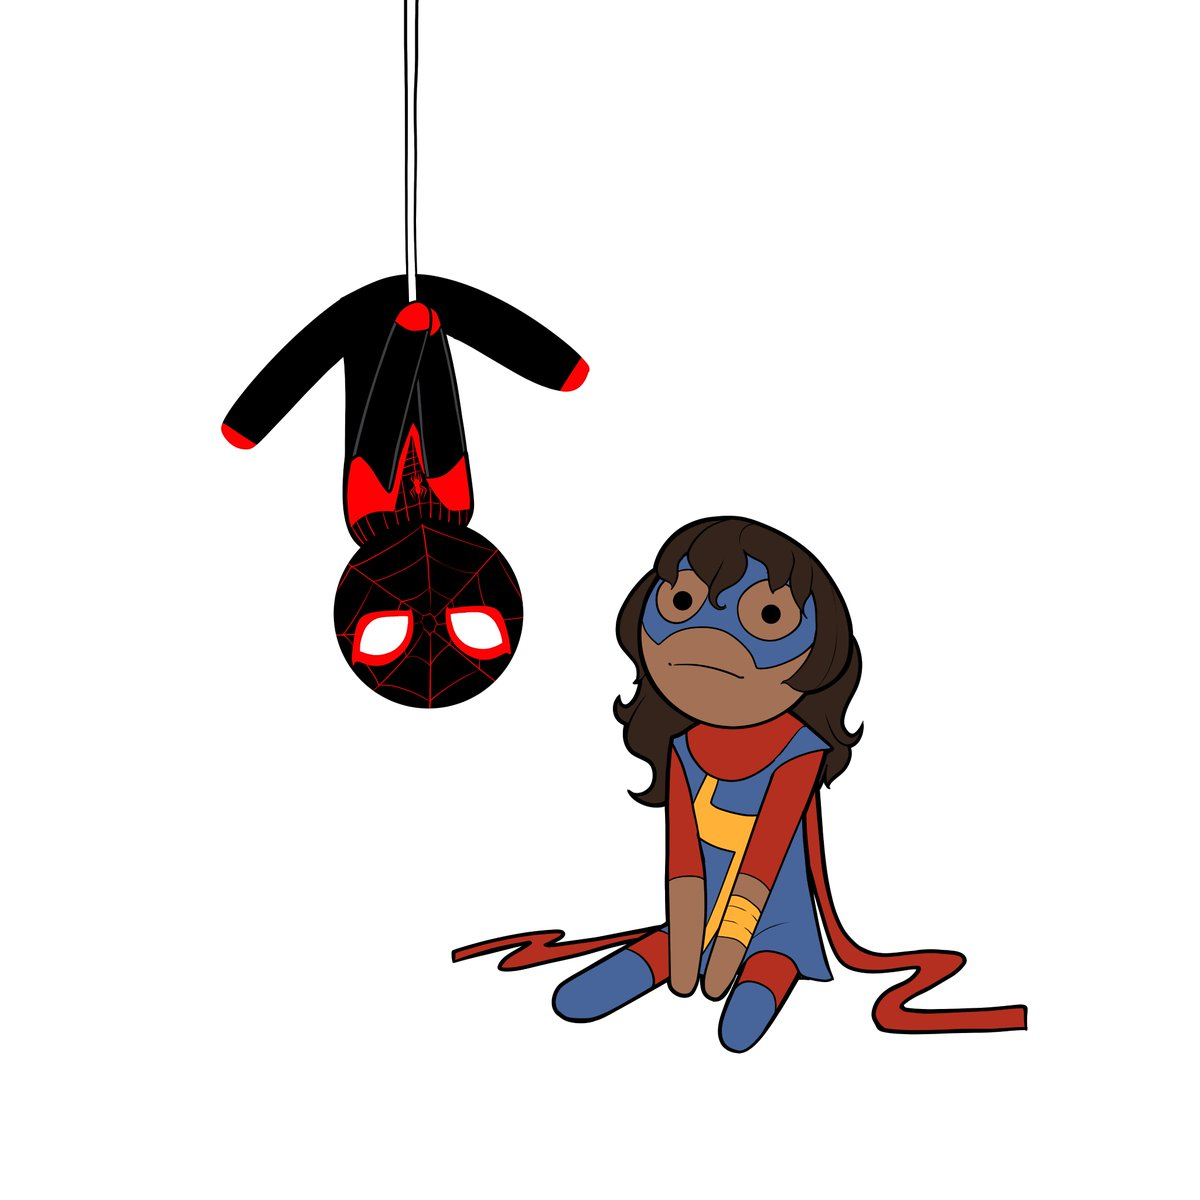 Preview! #MsMarvel #KamalaKhan #SpiderMan #MilesMorales #Champions<br>http://pic.twitter.com/BY3KlL0RnK